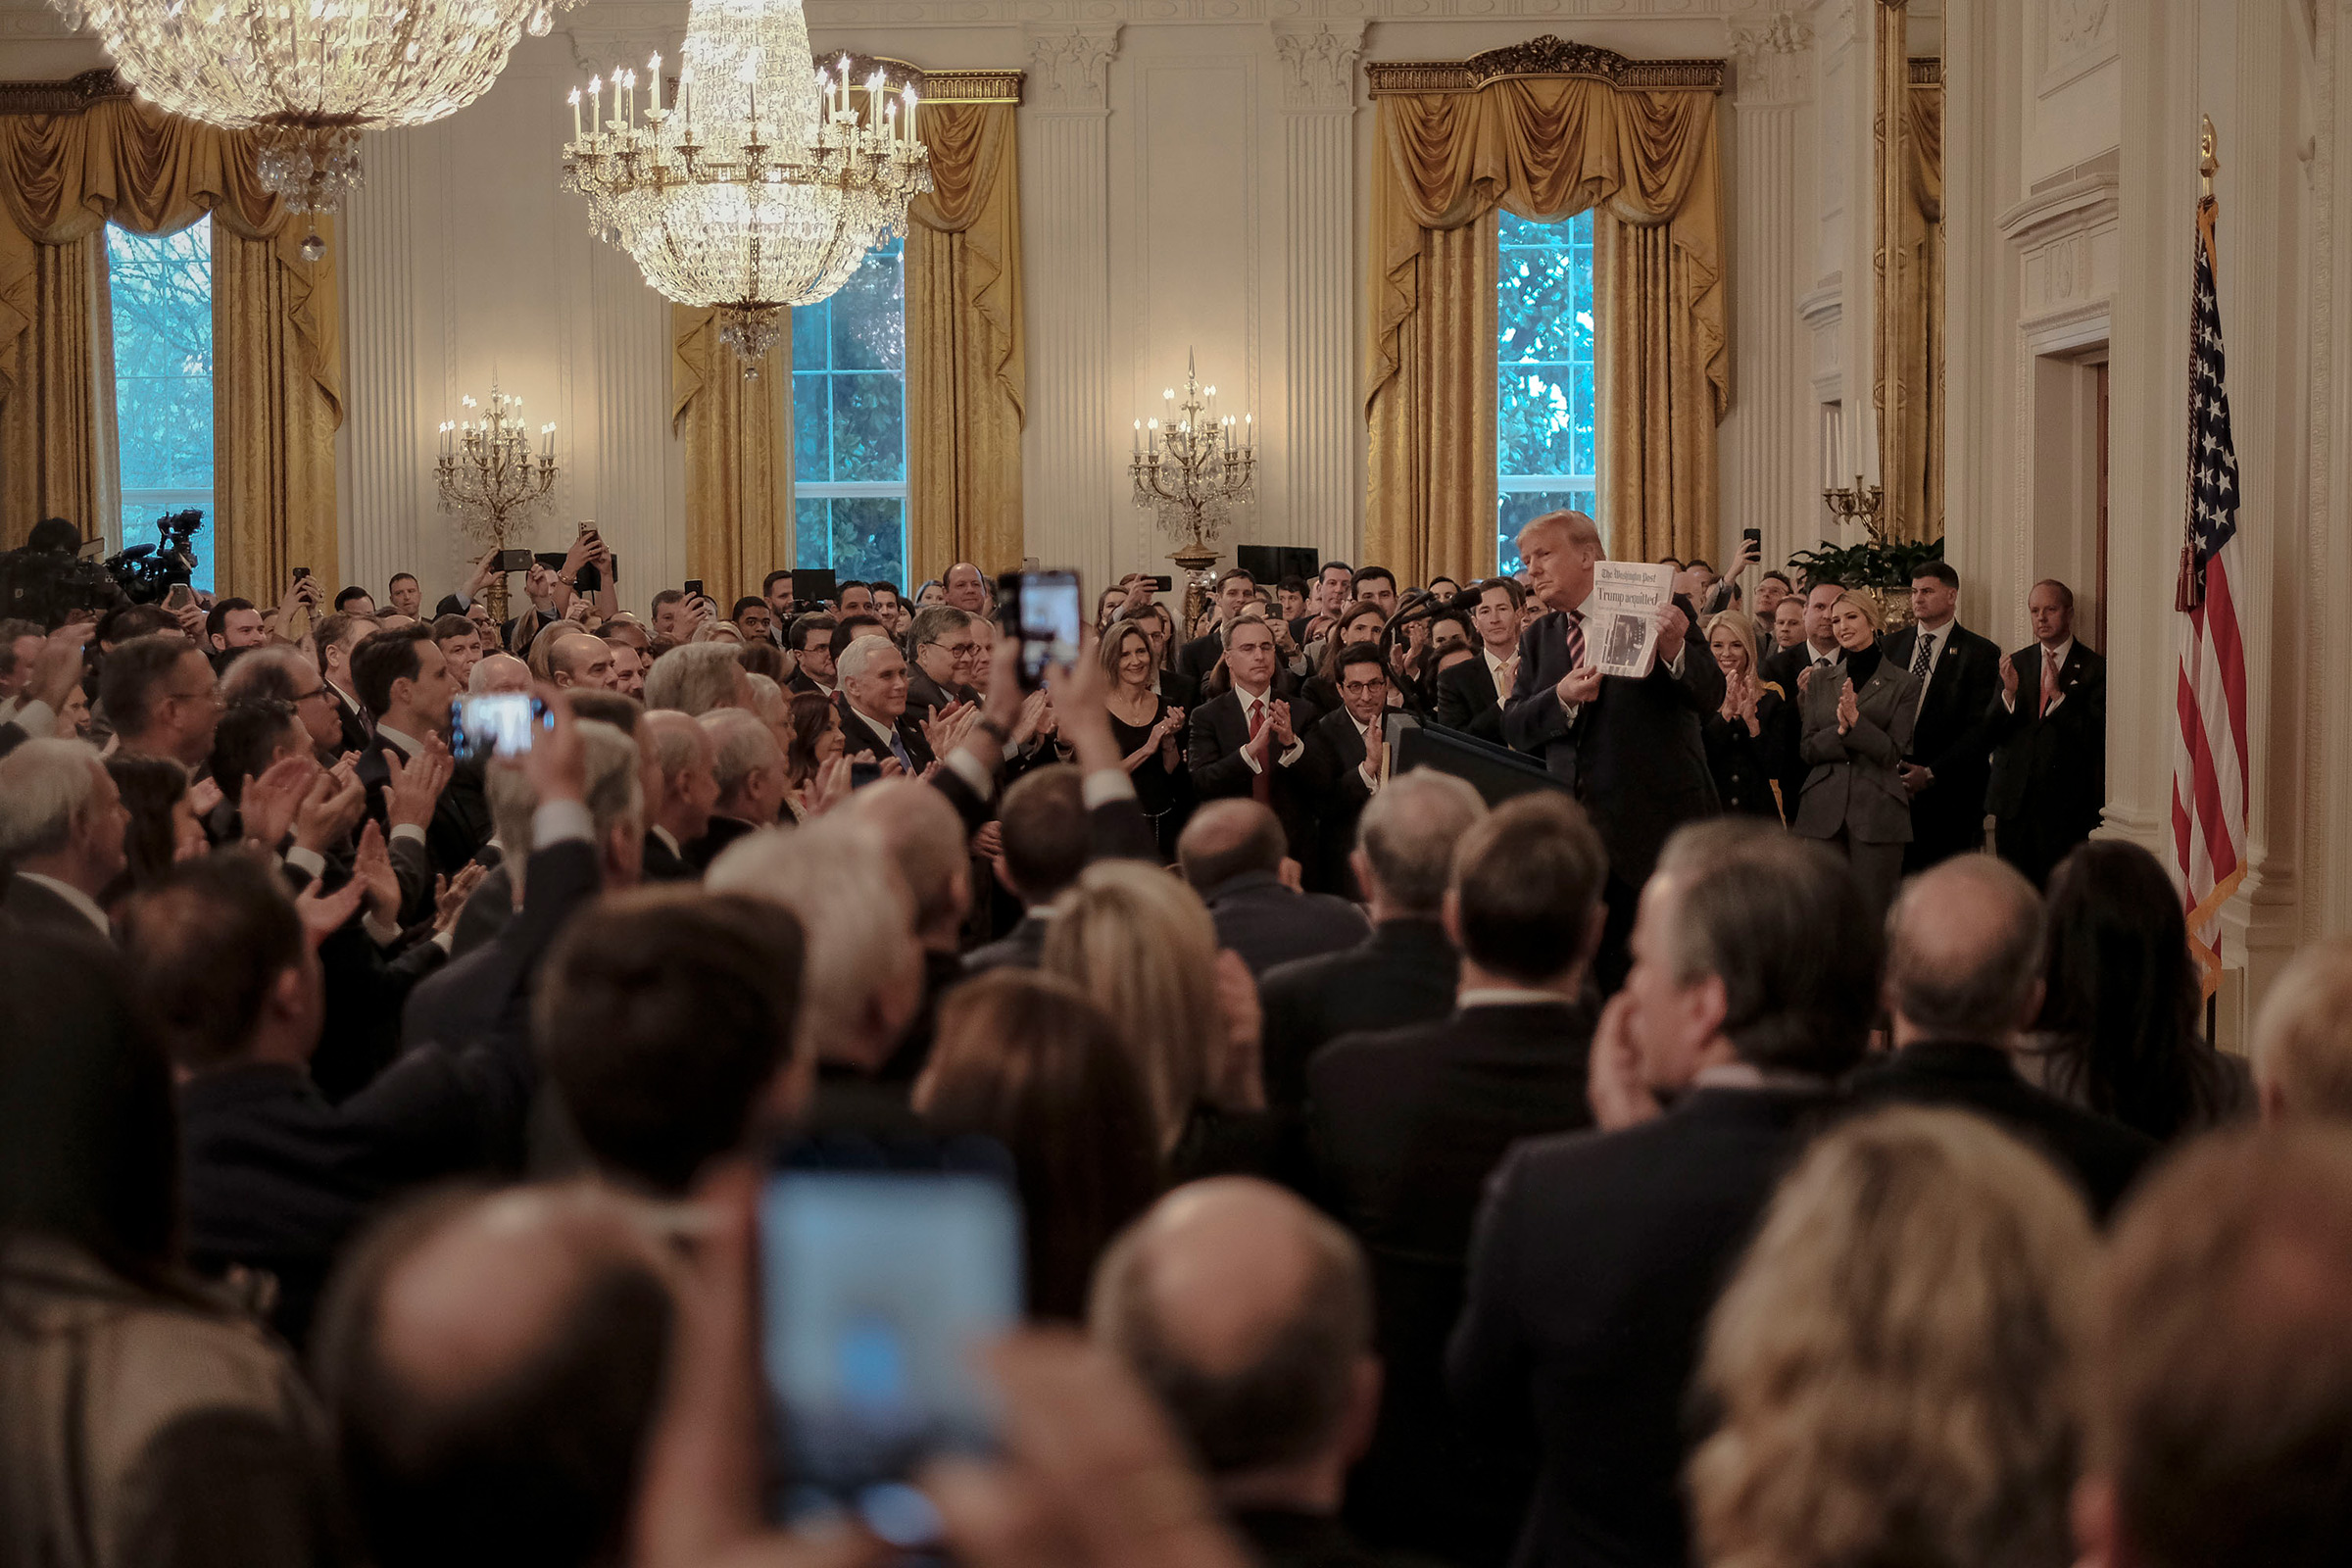 President Donald Trump speaks in the East Room of the White House in Washington, D.C., on Feb. 6, 2020, one day after the Senate acquitted him on two articles of impeachment.